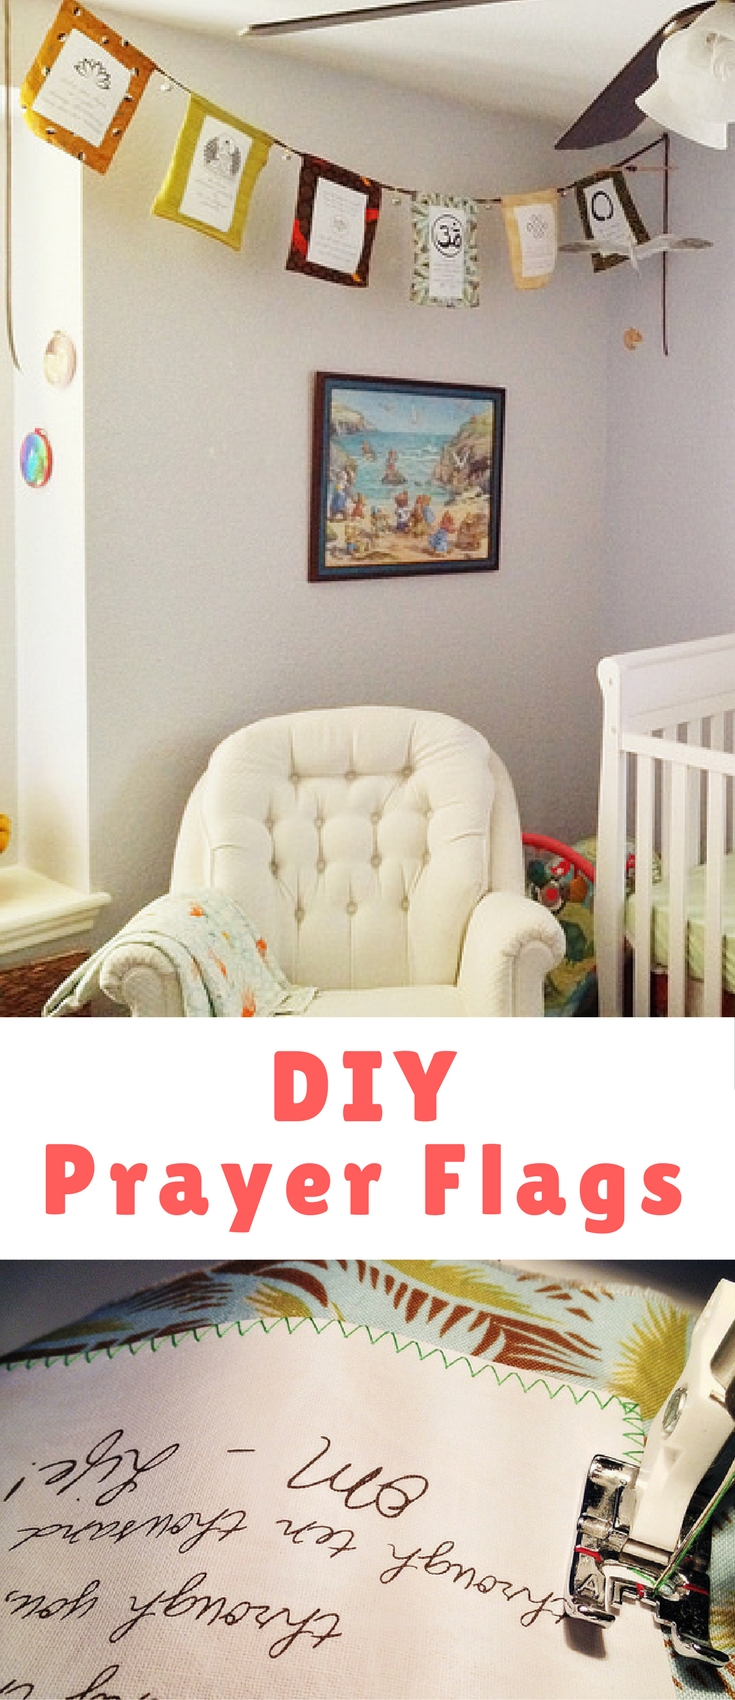 You could easily customize this project to suit any kind of sentiment or spiritual belief you like though. Bible verses, song lyrics, or famous quotes would all work nicely on prayer flags.